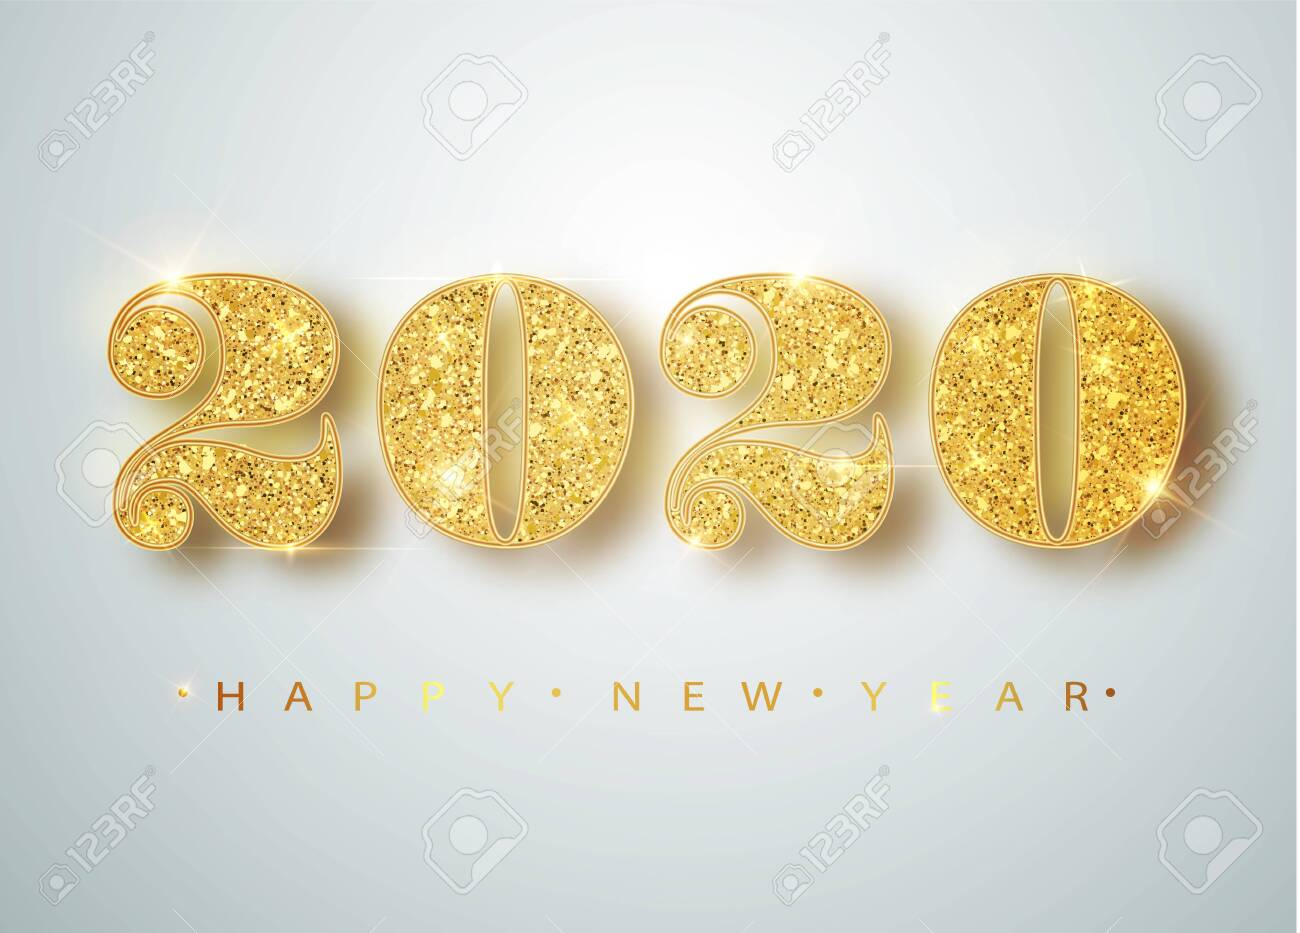 Happy New 2020 Year. Holiday vector illustration of golden metallic numbers 2020. Realistic sign. Festive poster or banner design - 122515108